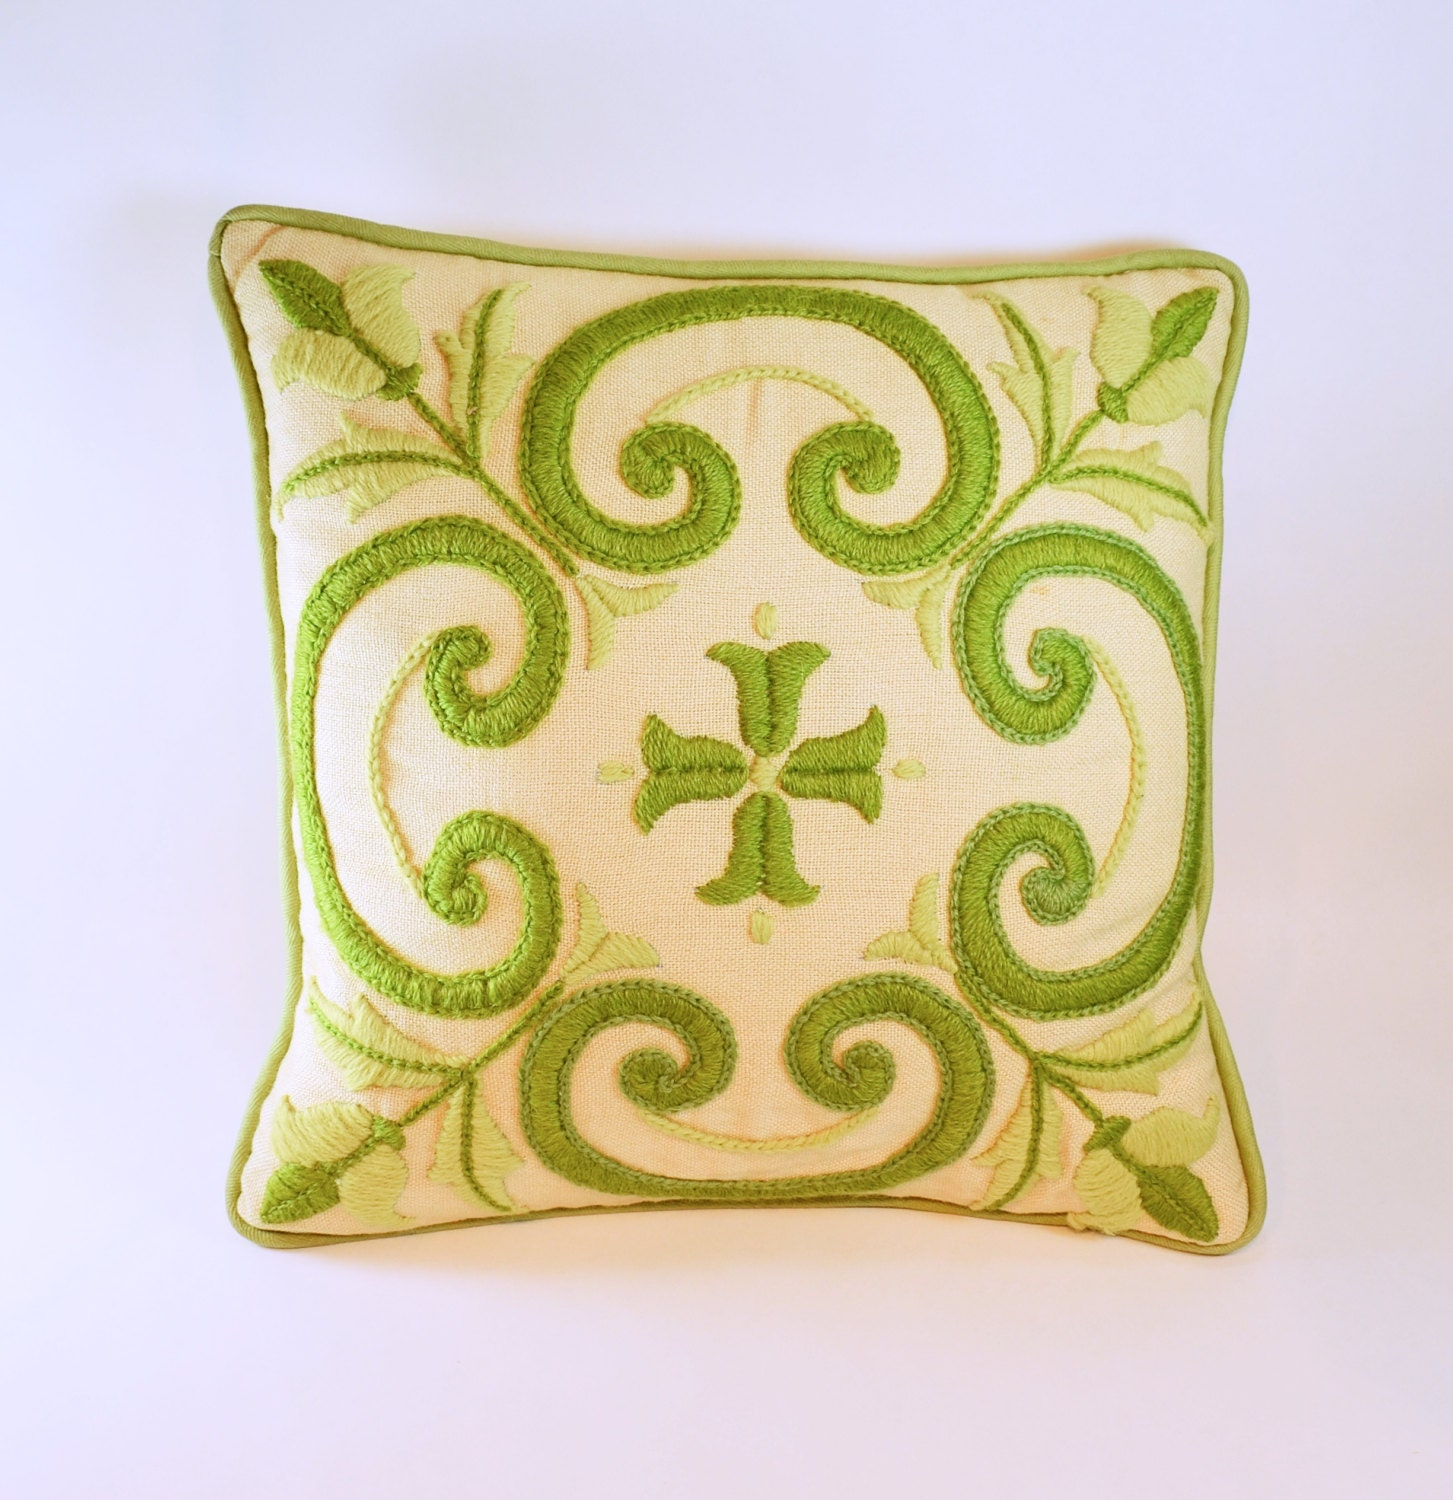 Vintage Crewel Embroidery Throw Pillow